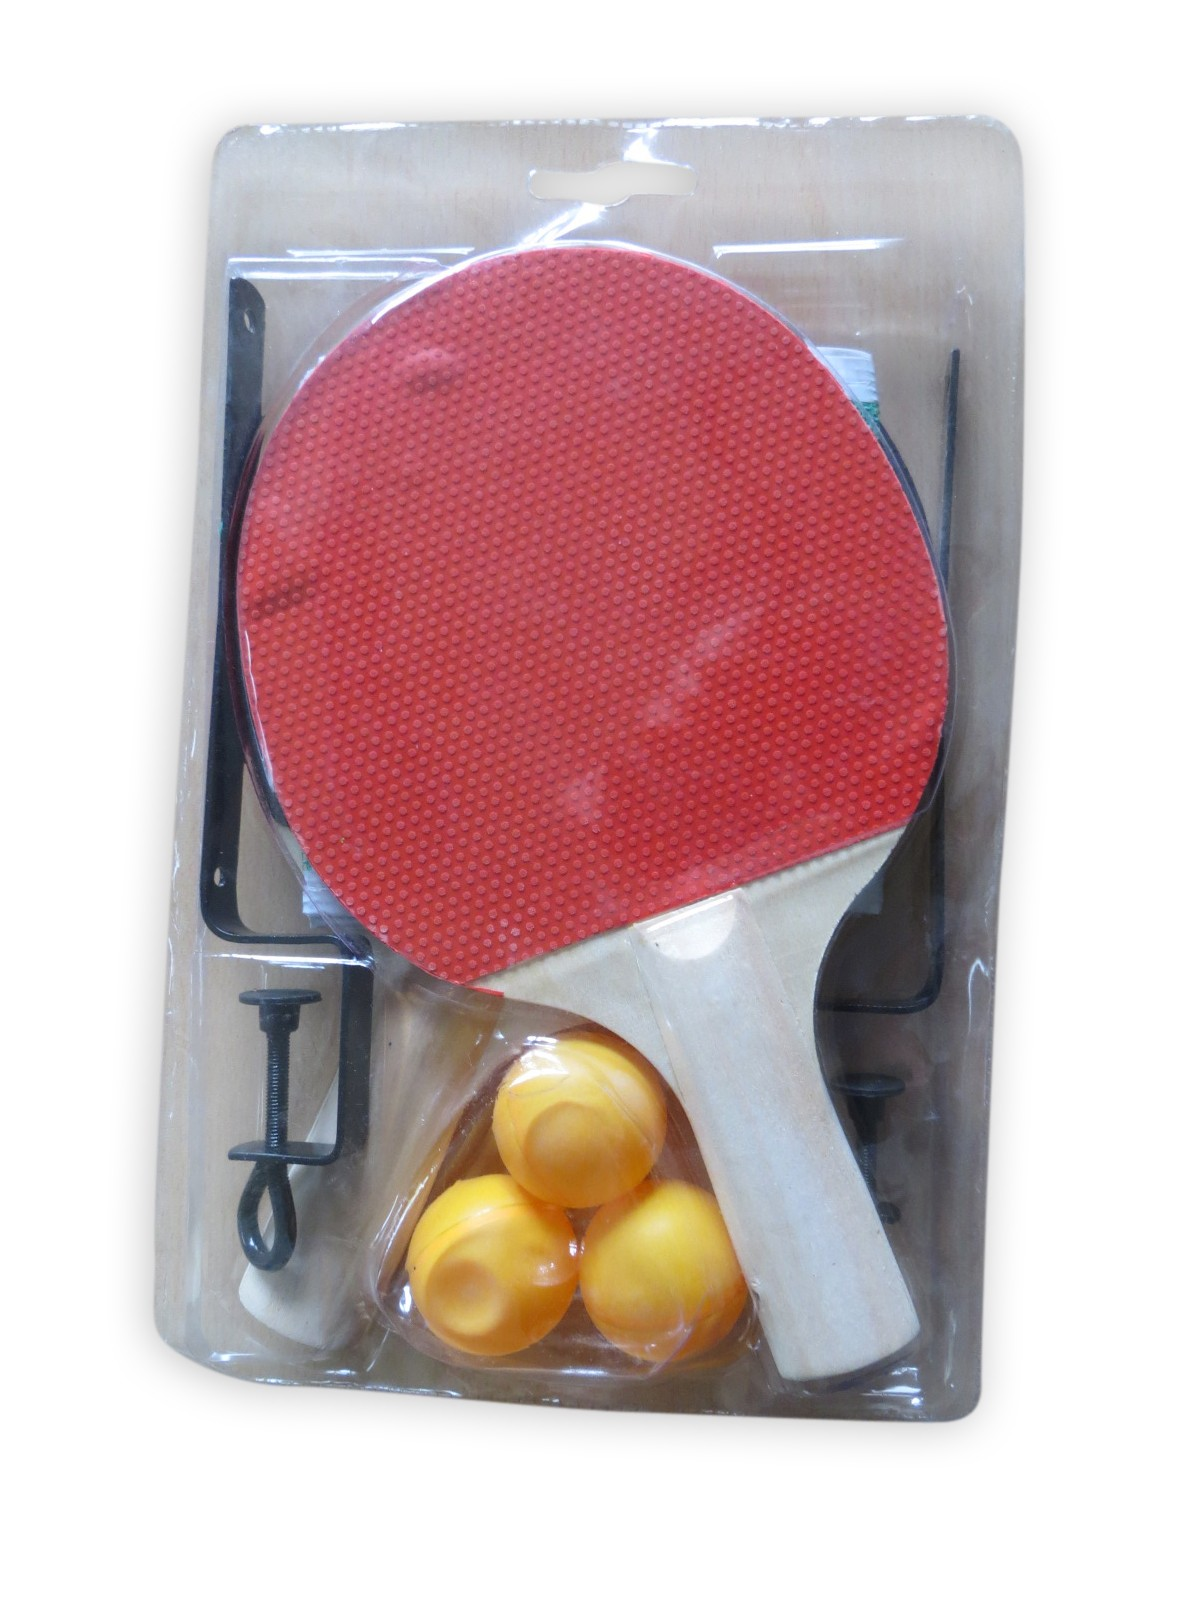 A set of tennis